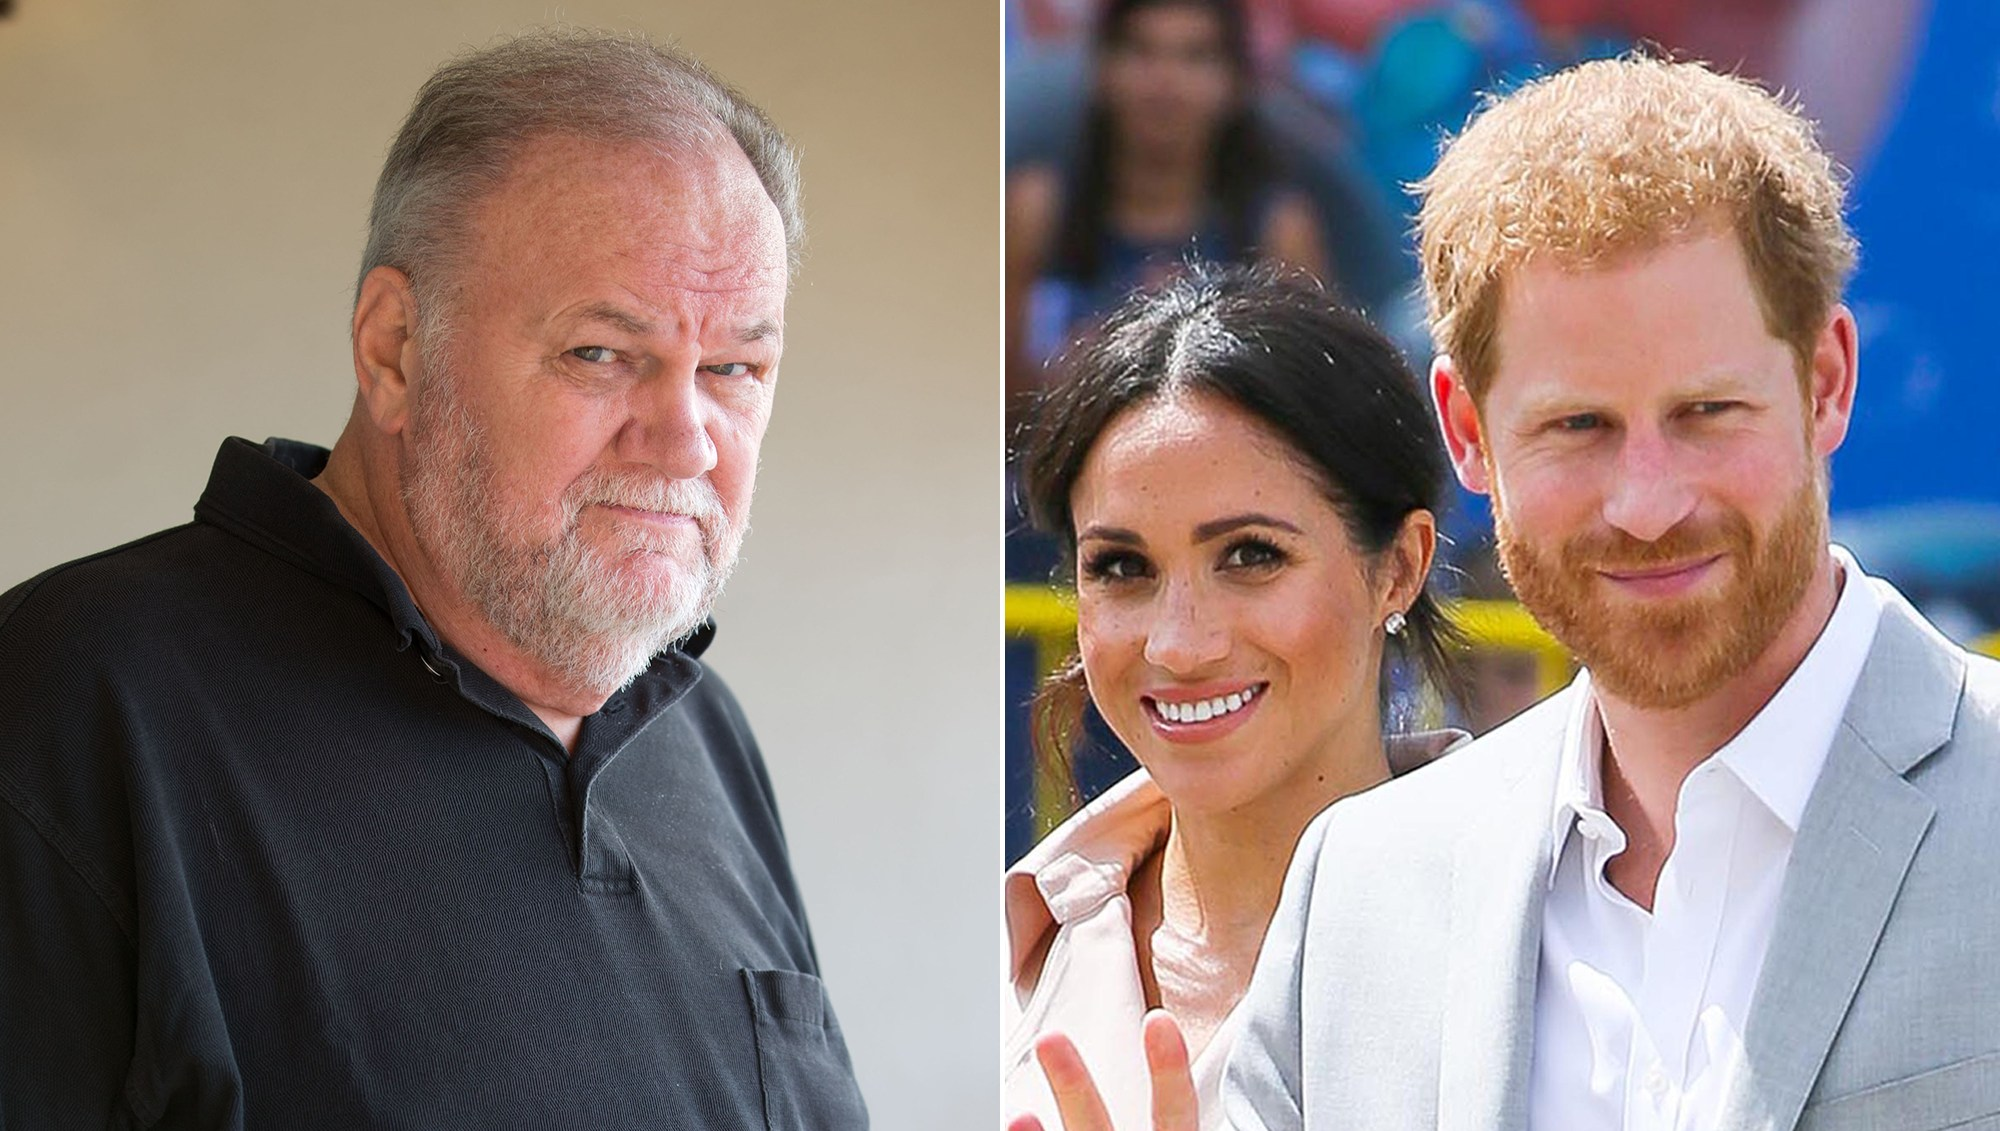 Duchess Meghan's Dad Thomas Markle Brings Up How Prince Harry 'Hasn't Always Been Perfectly Behaved'